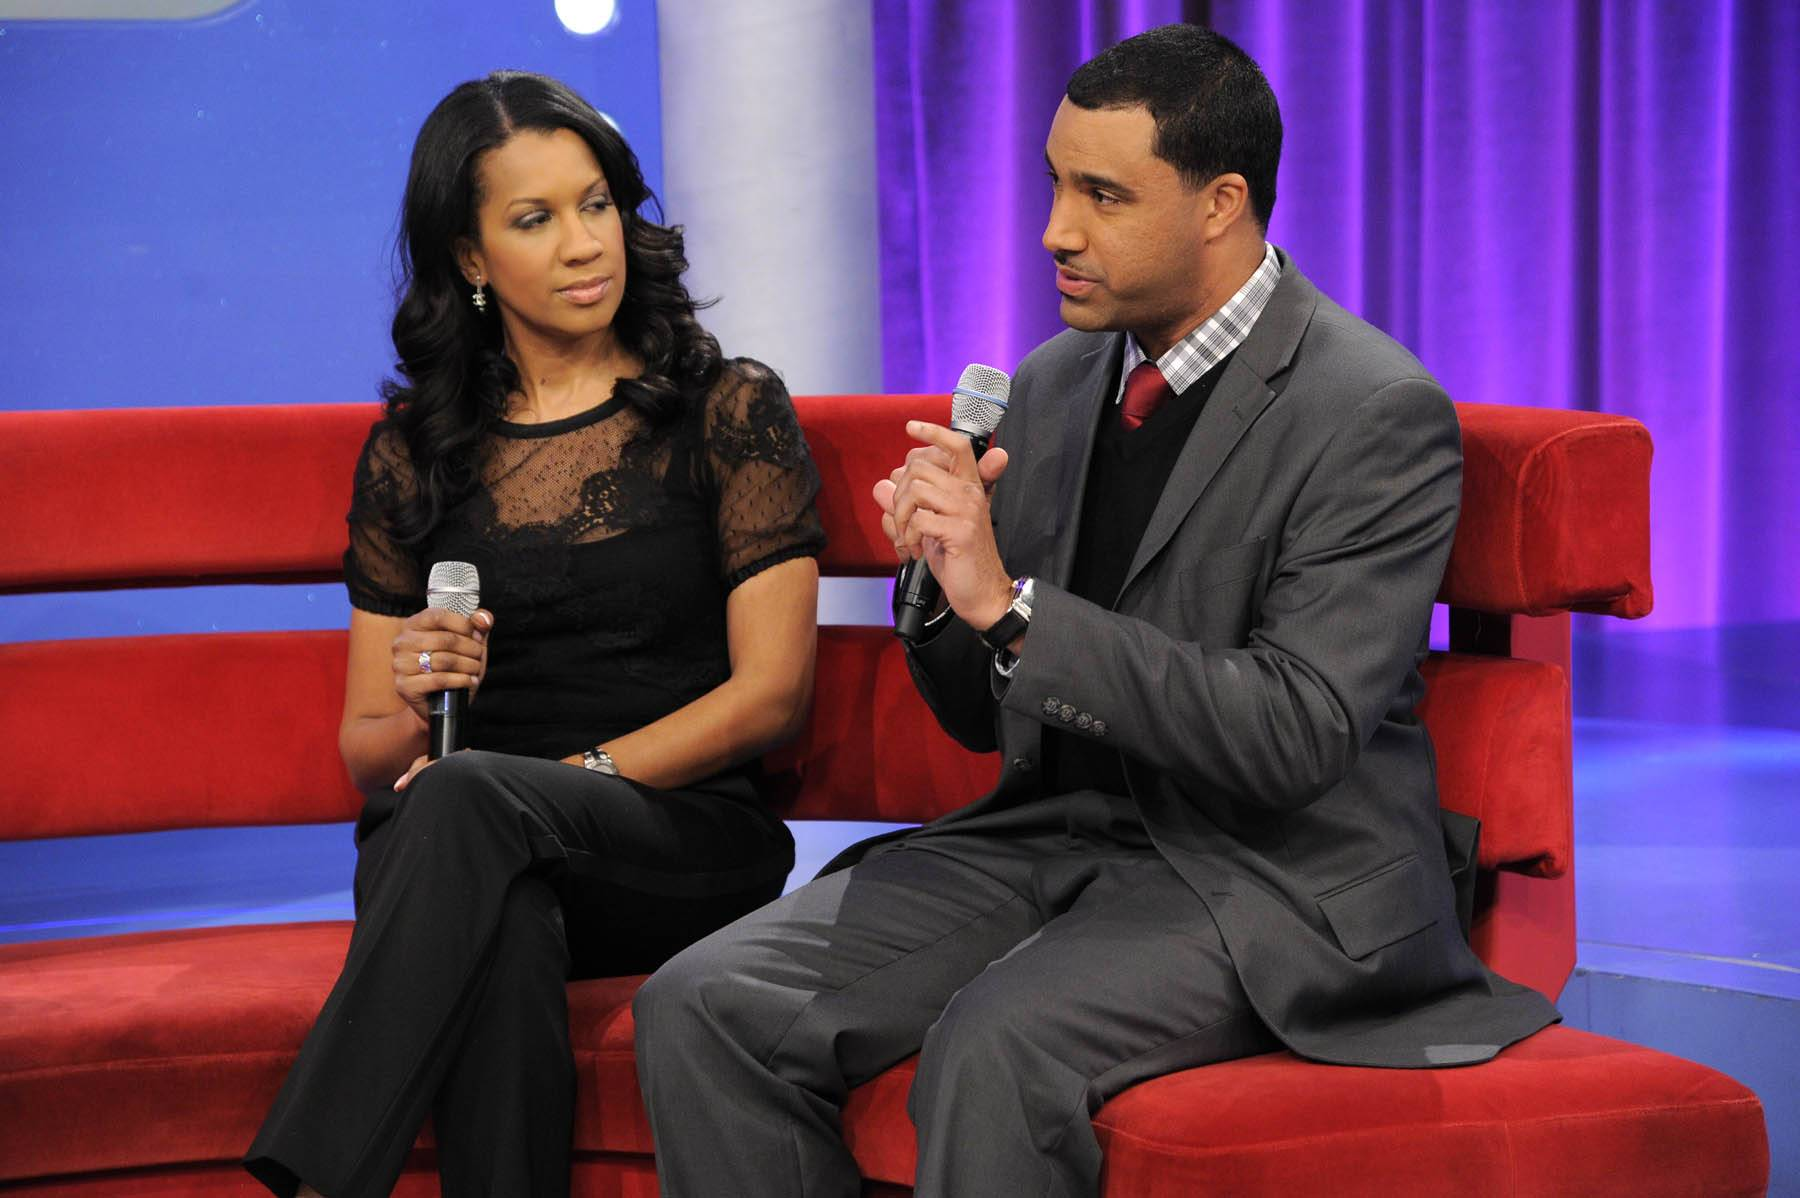 Listen Up - Dr. Michelle and Dr. Tarrt talk with Don Trip at 106 & Park, January 30, 2012. (Photo: John Ricard / BET)